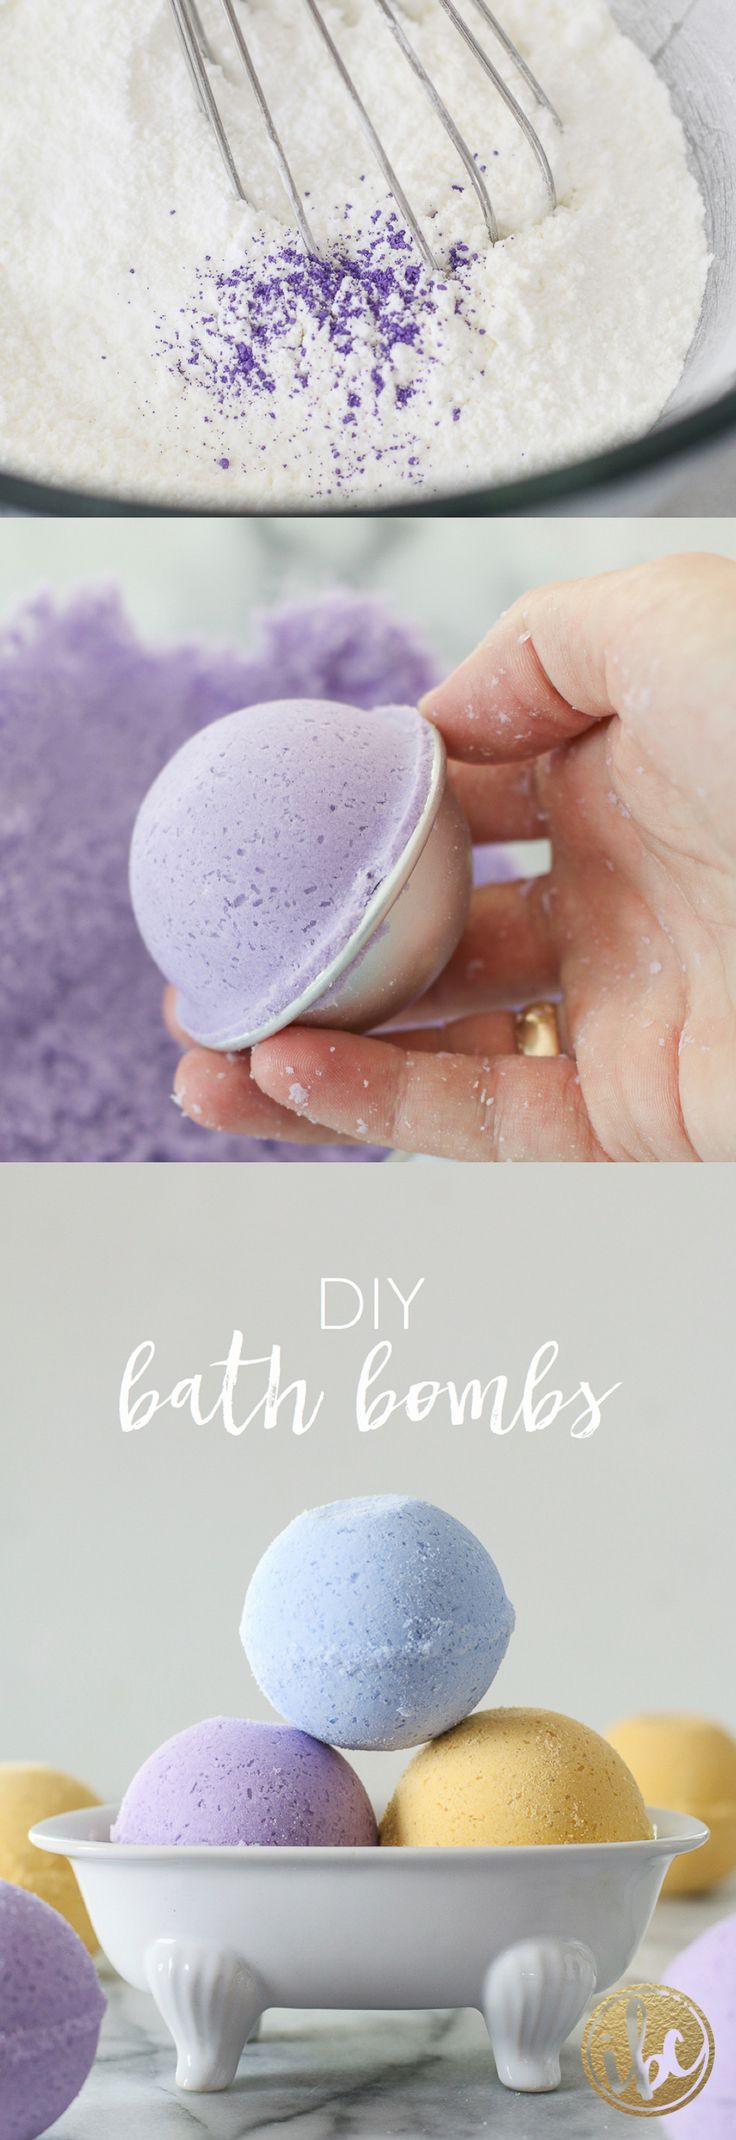 Make Your Own Gifts 565 best next gift ideas for her images on pinterest all things diy bath bombs sisterspd